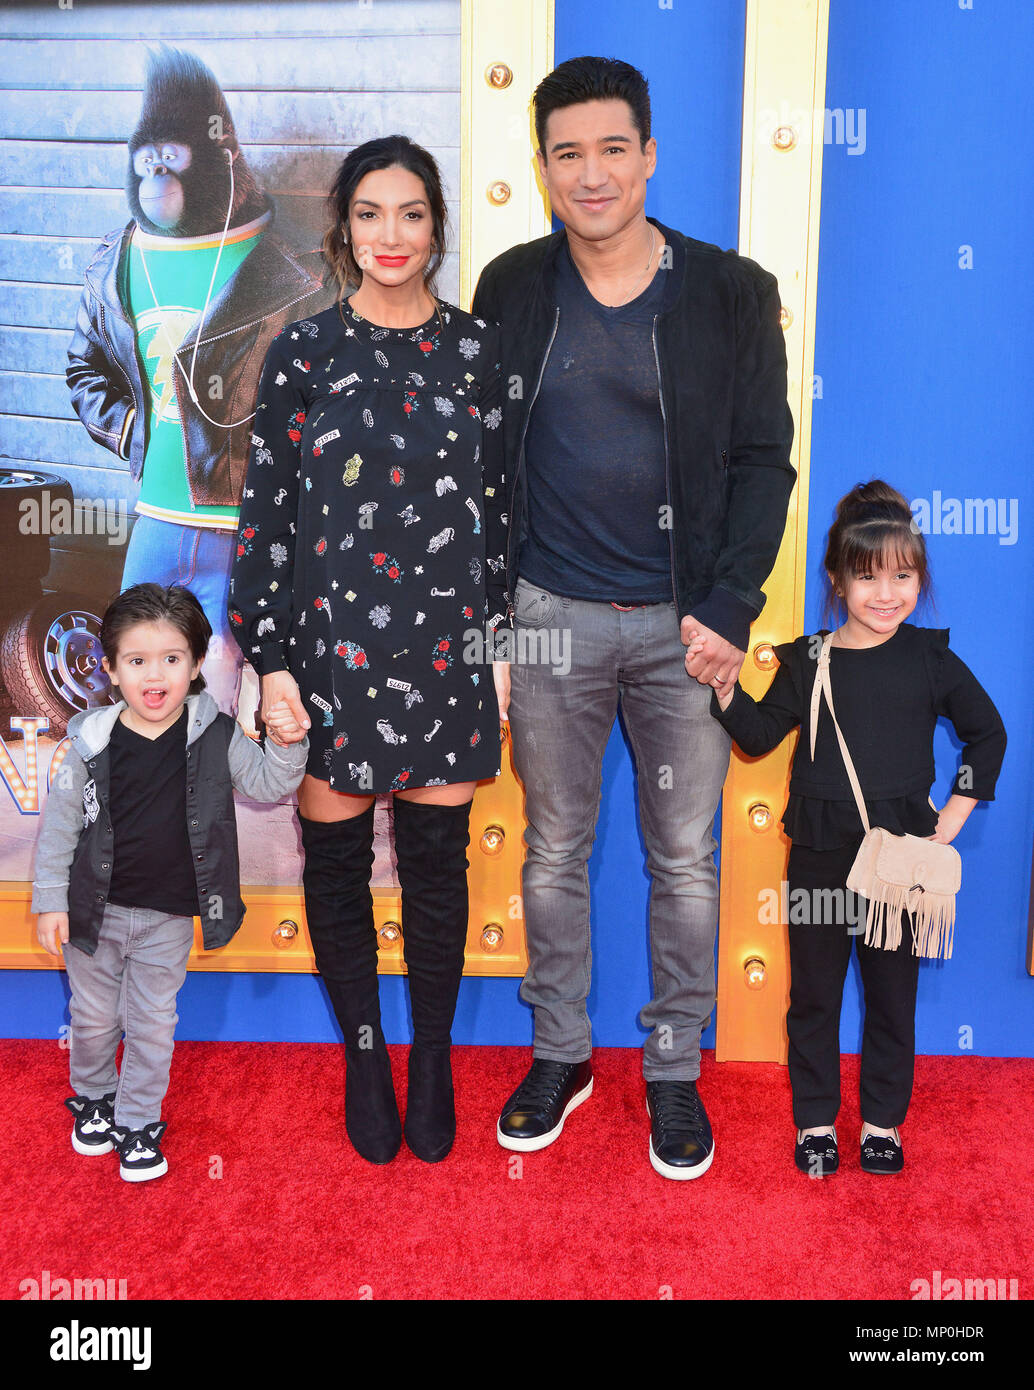 Mario Lopez Wife And Kids Son And Daughter At The Sing